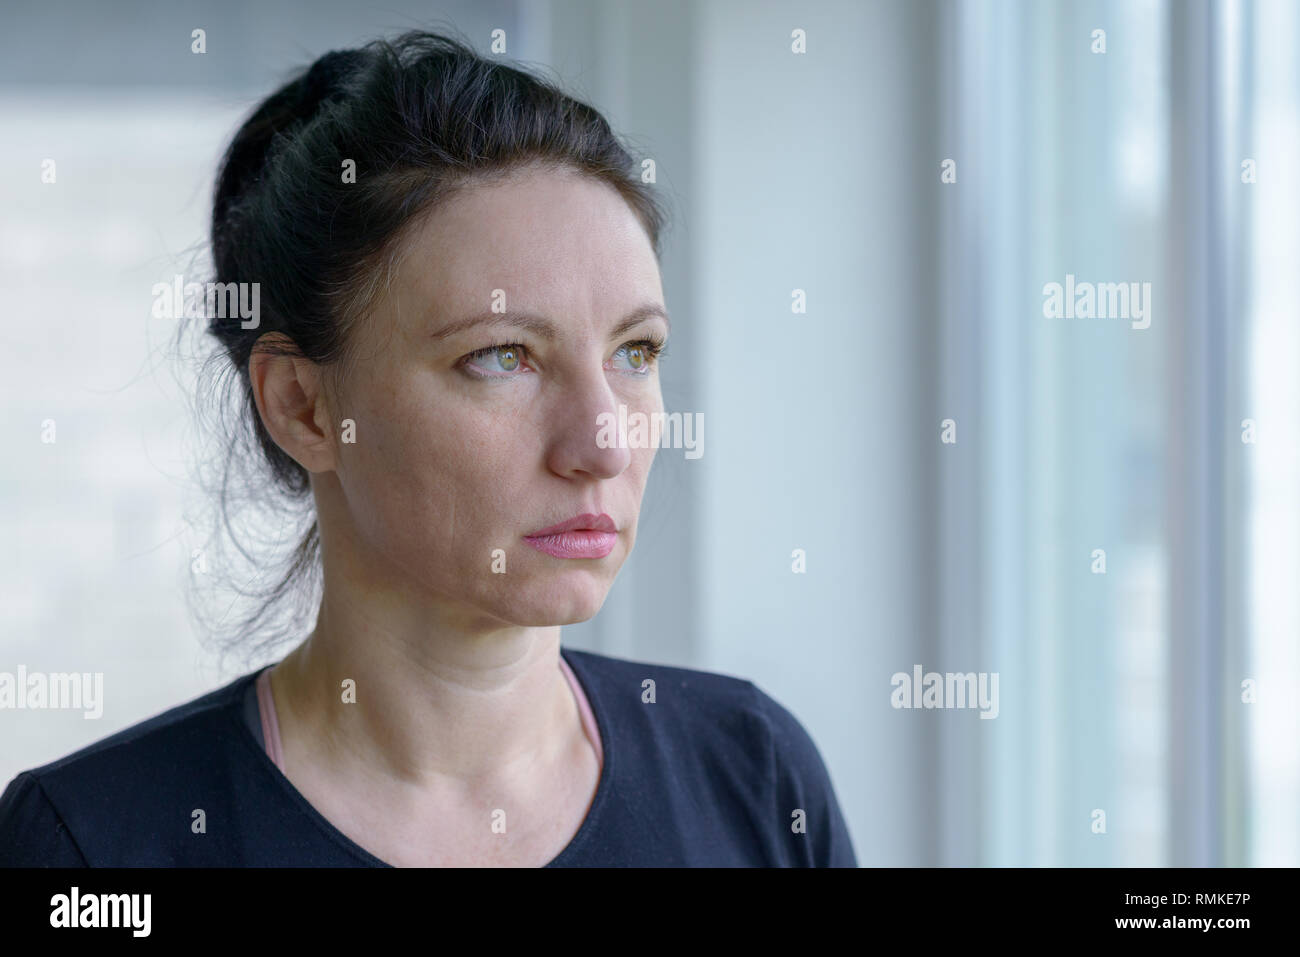 Thoughtful woman staring out of a window with a sombre deadpan expression in a head and shoulders portrait - Stock Image